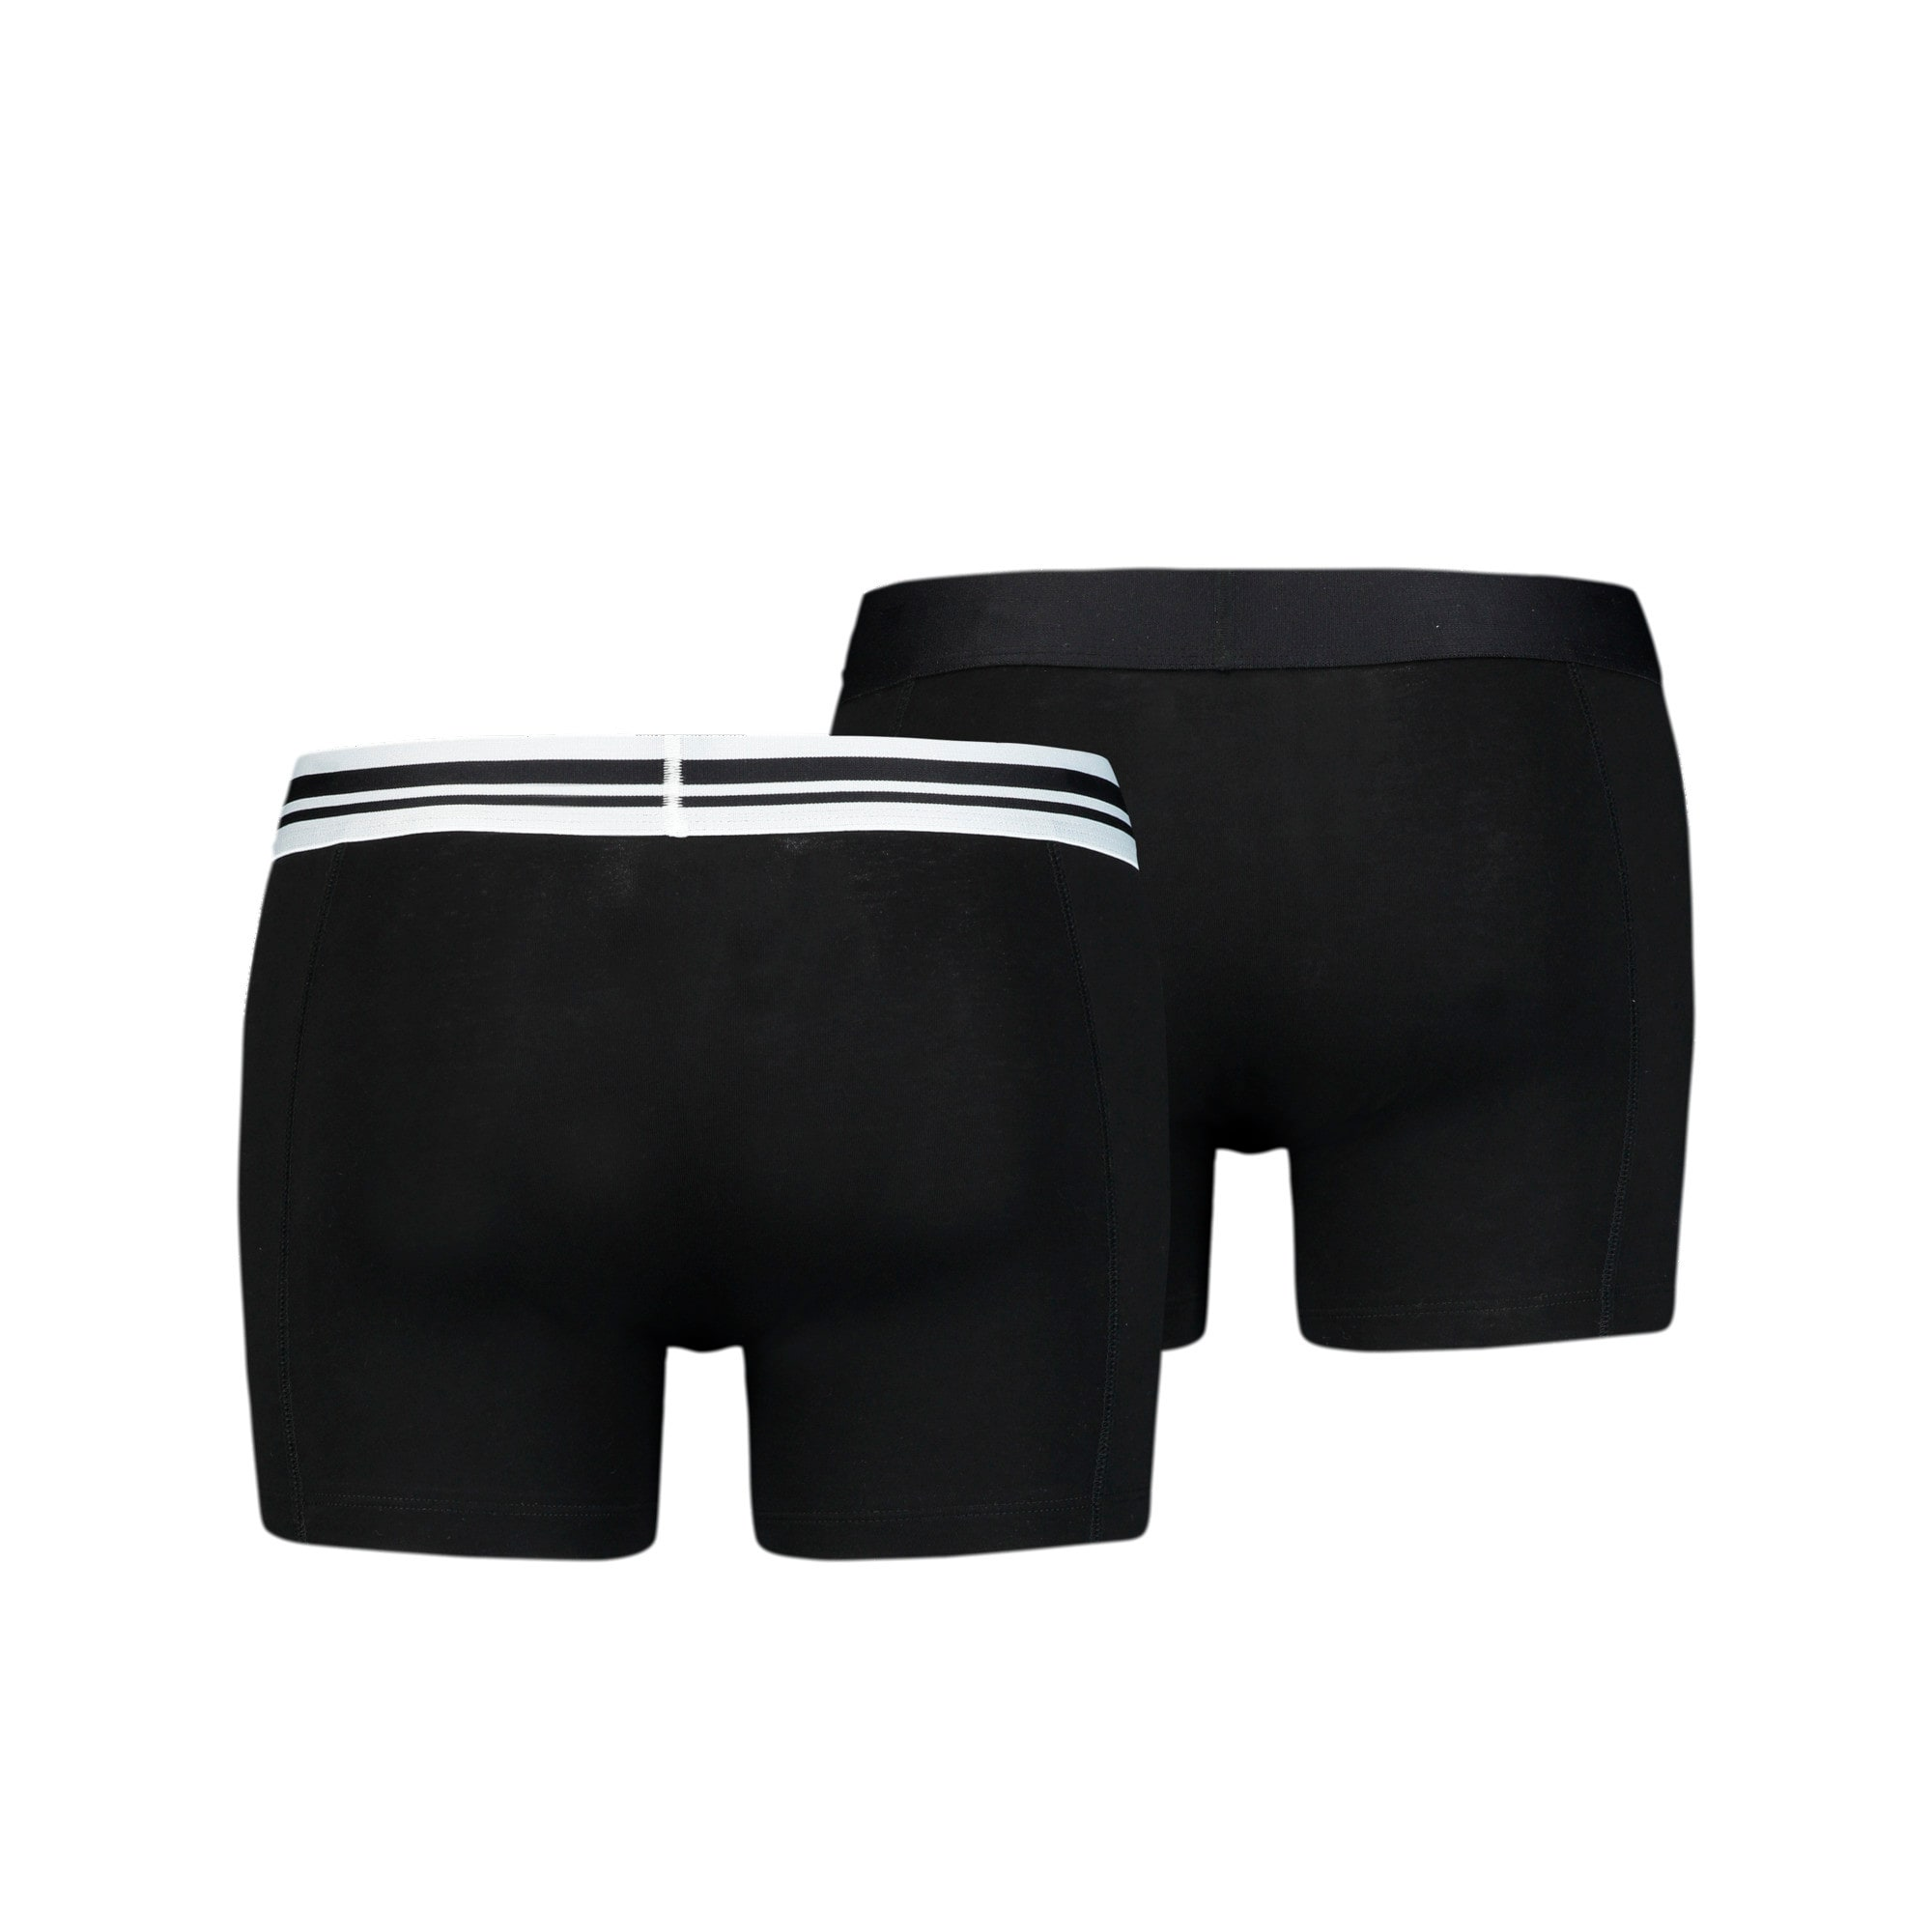 Placed Logo Short Boxers 2 Pack, black, large